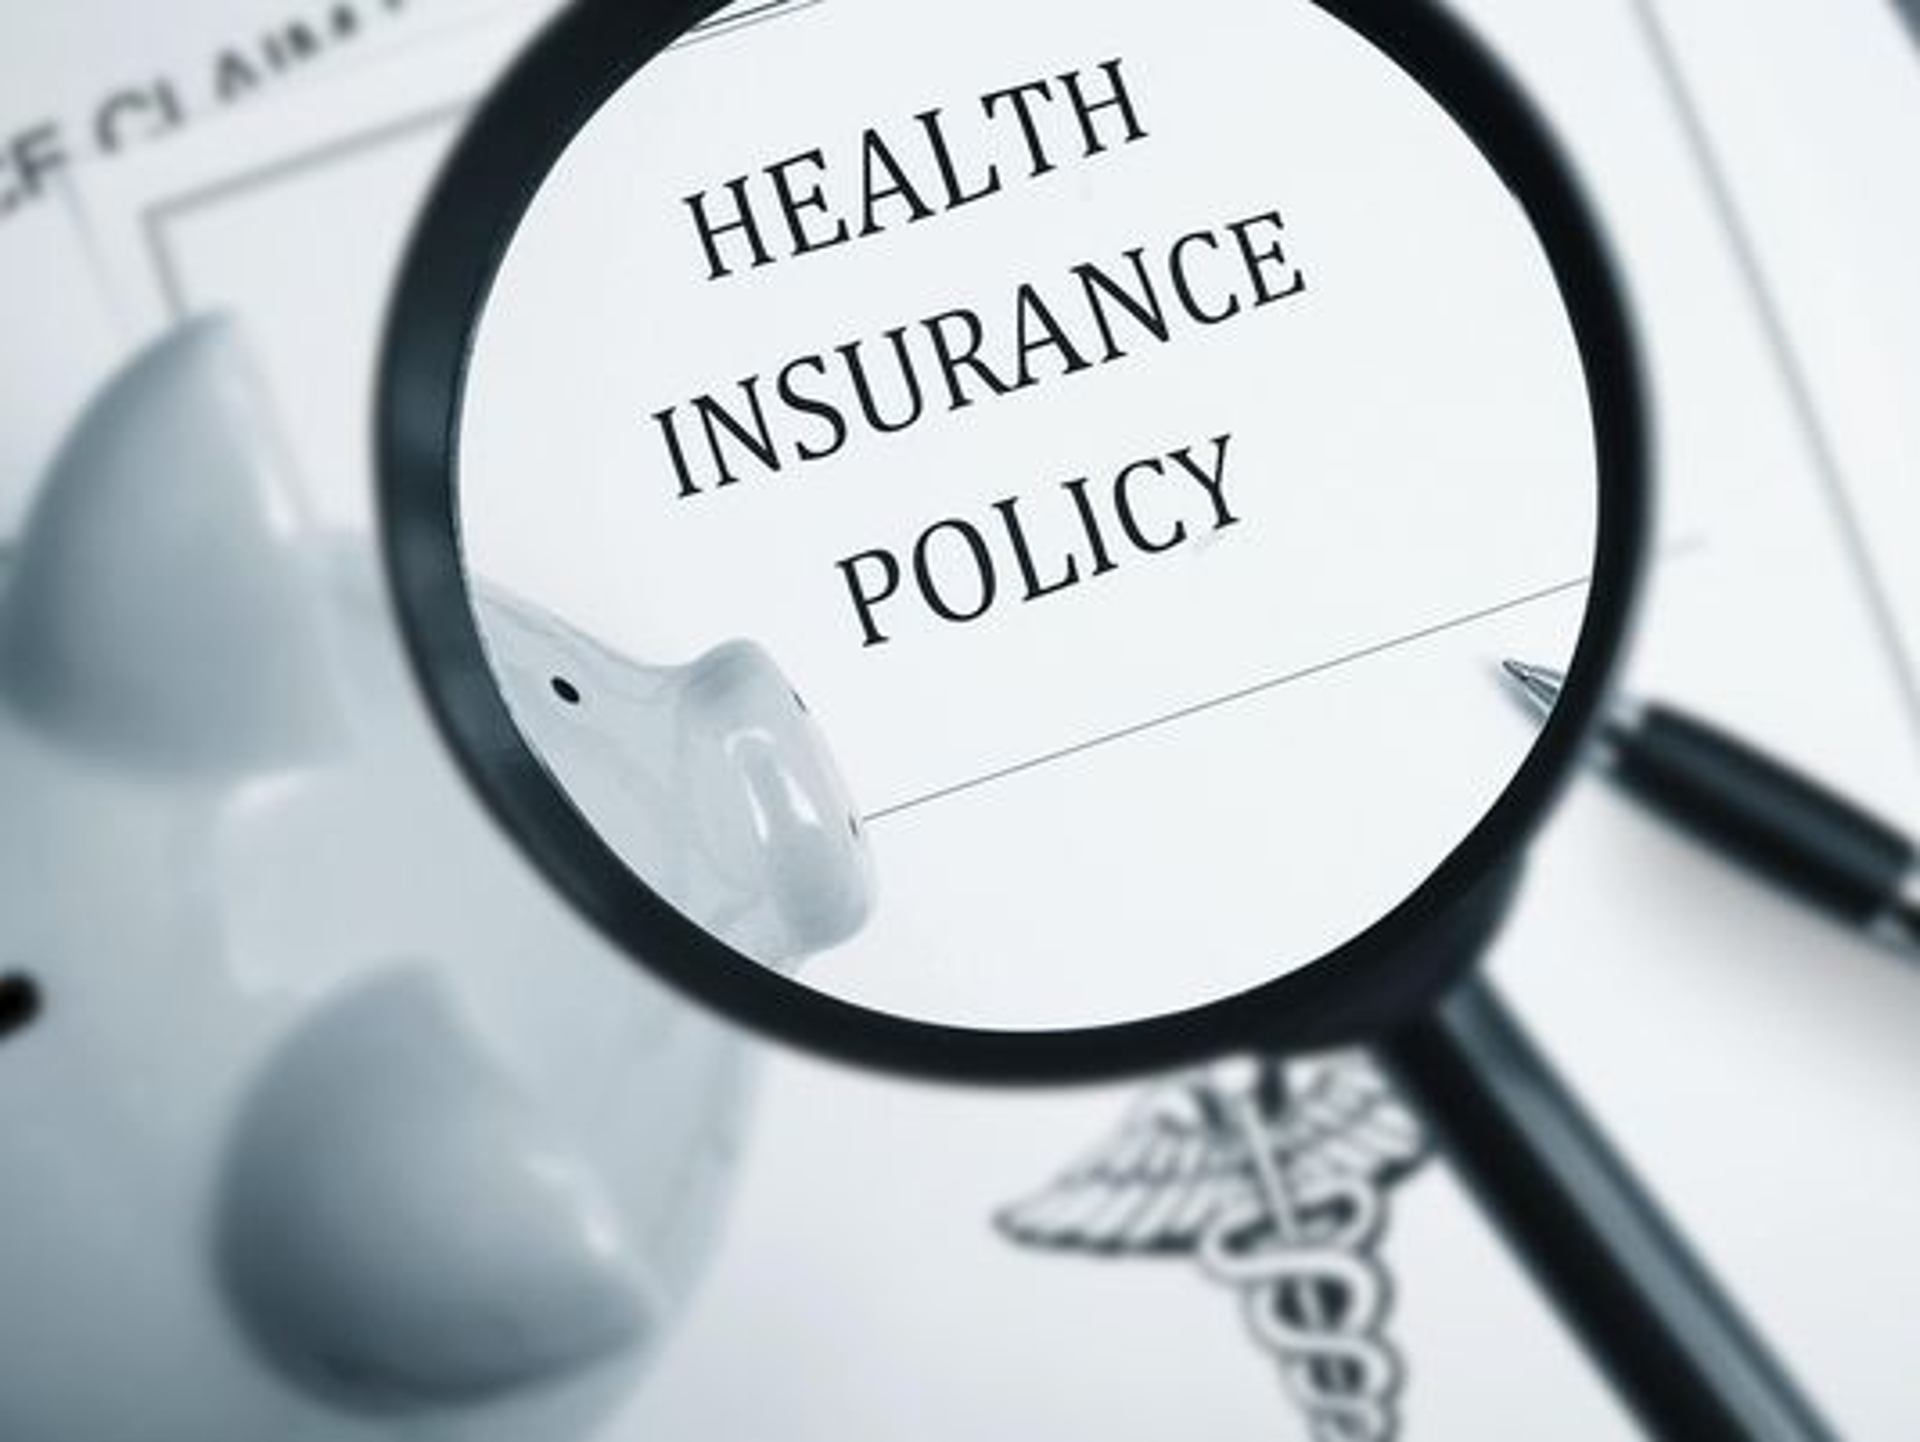 healthpolicy